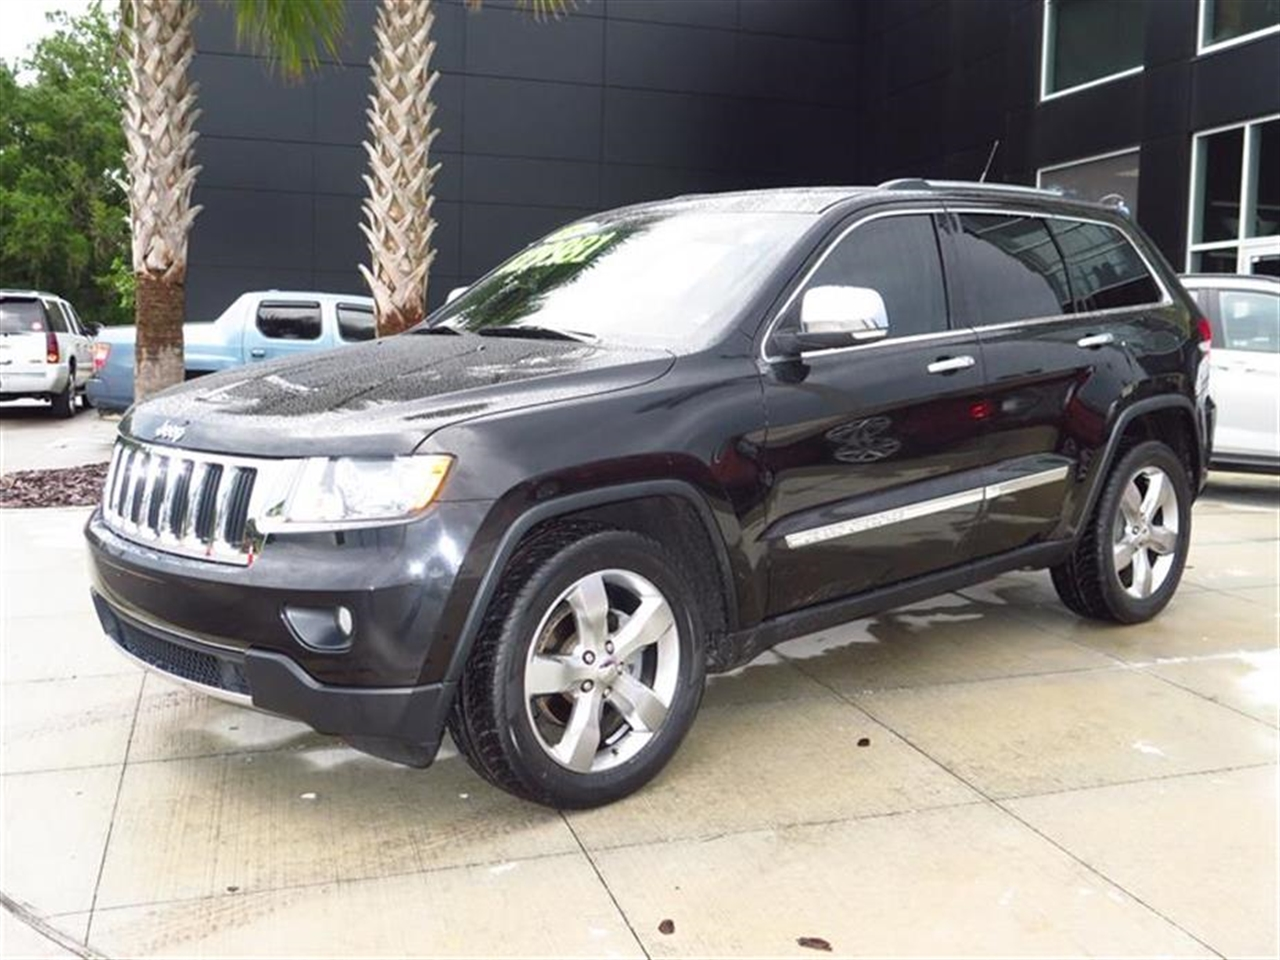 2011 JEEP GRAND CHEROKEE RWD 4dr Limited 38957 miles 115V pwr outlet 12-volt pwr outlet 12-volt